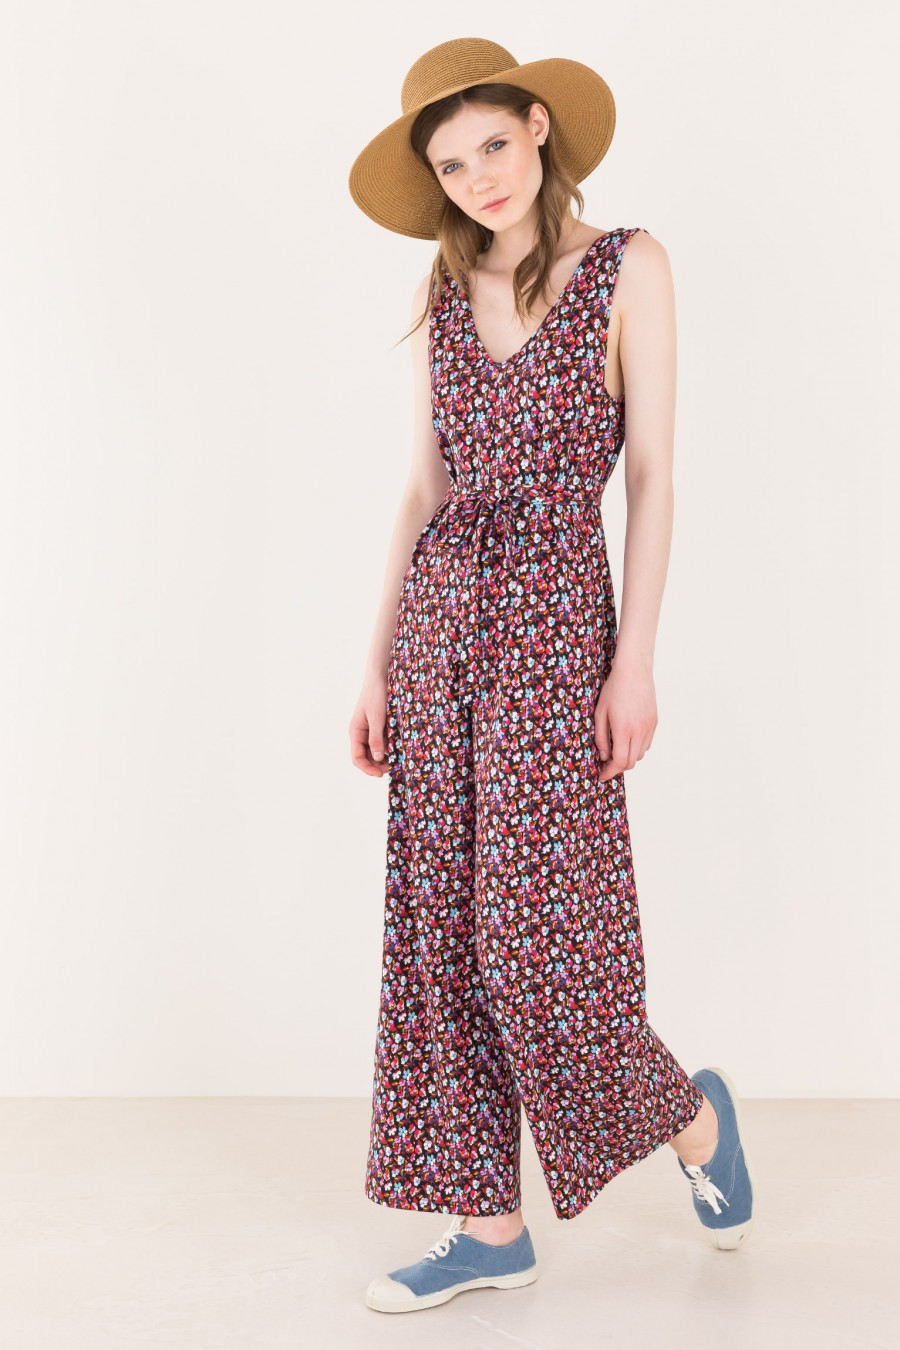 Overalls with flower print